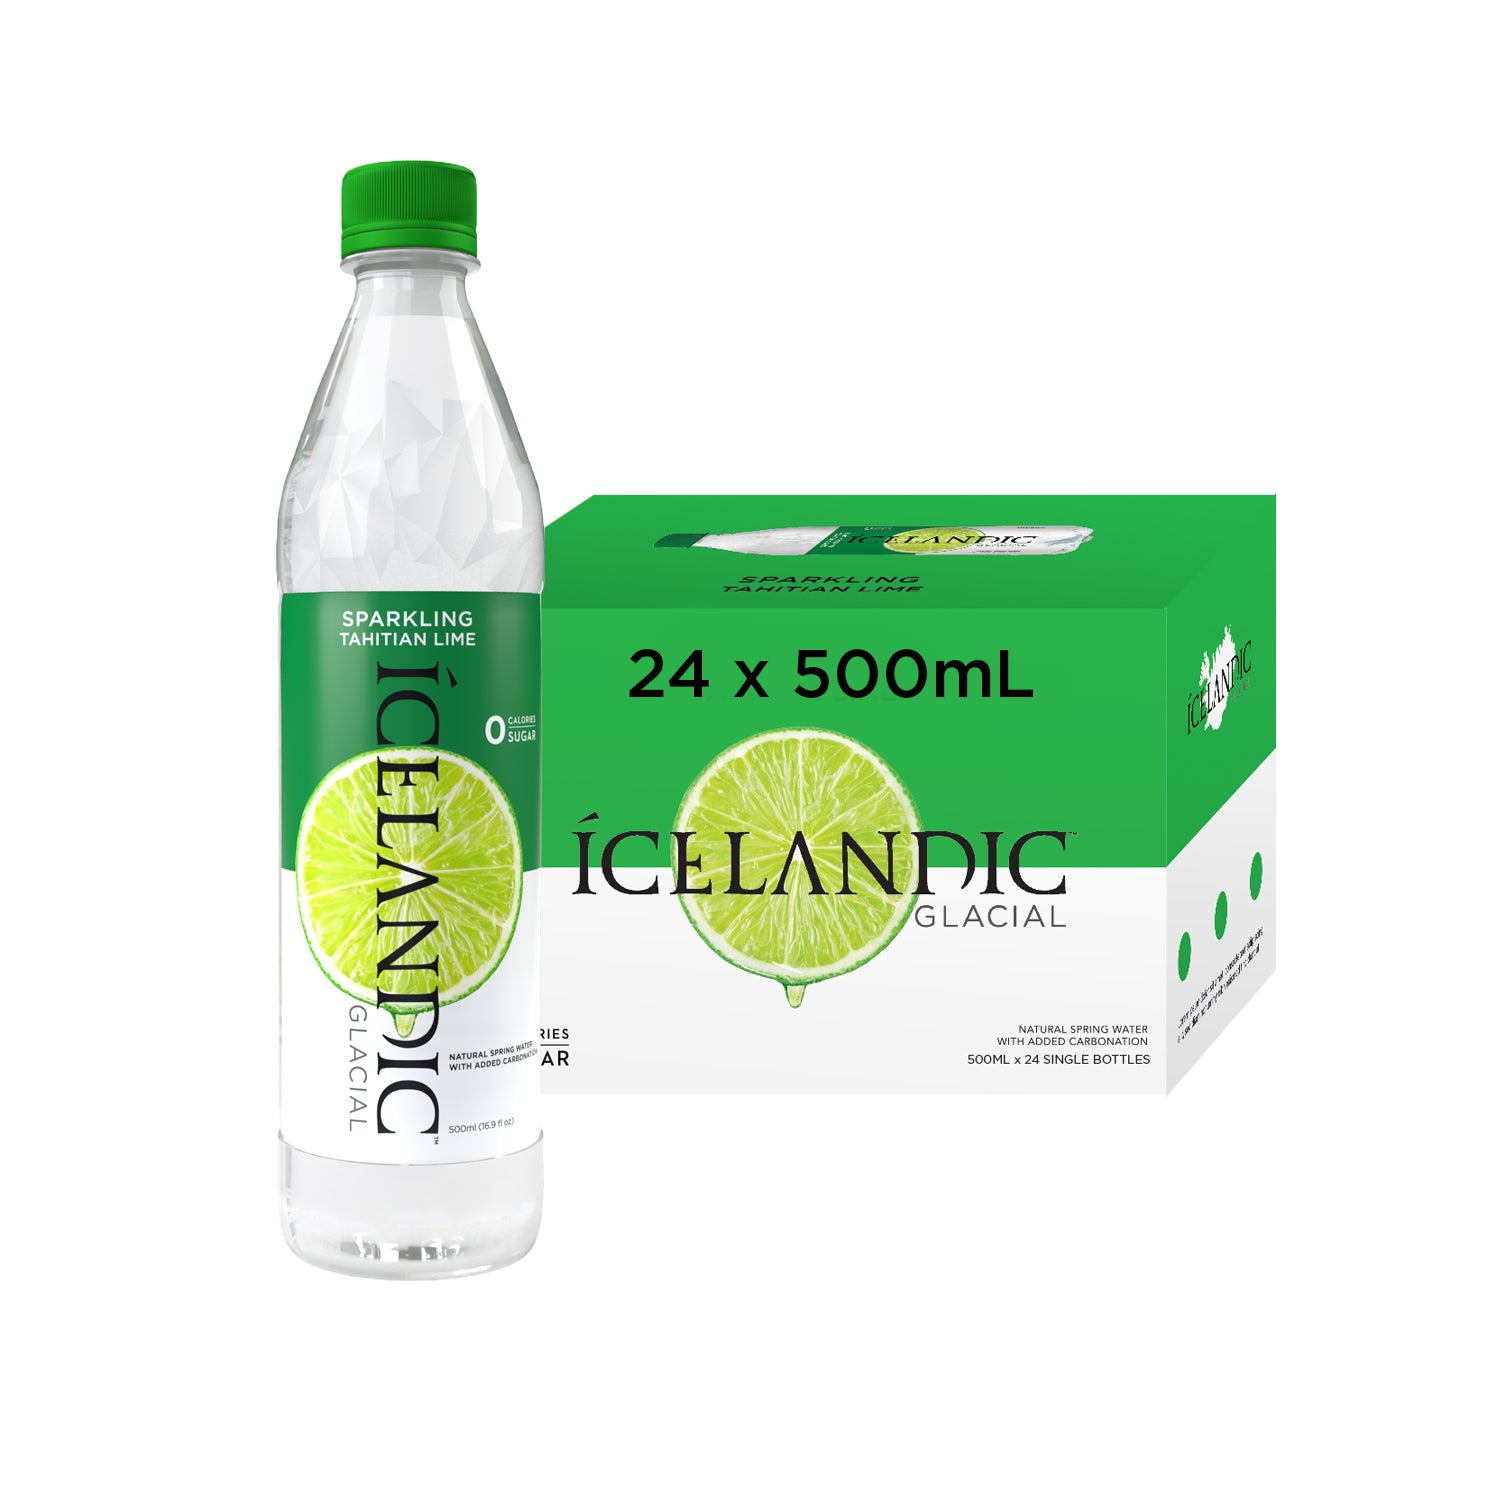 Sparkling Tahitian Lime 500ml Case - Icelandic Glacial